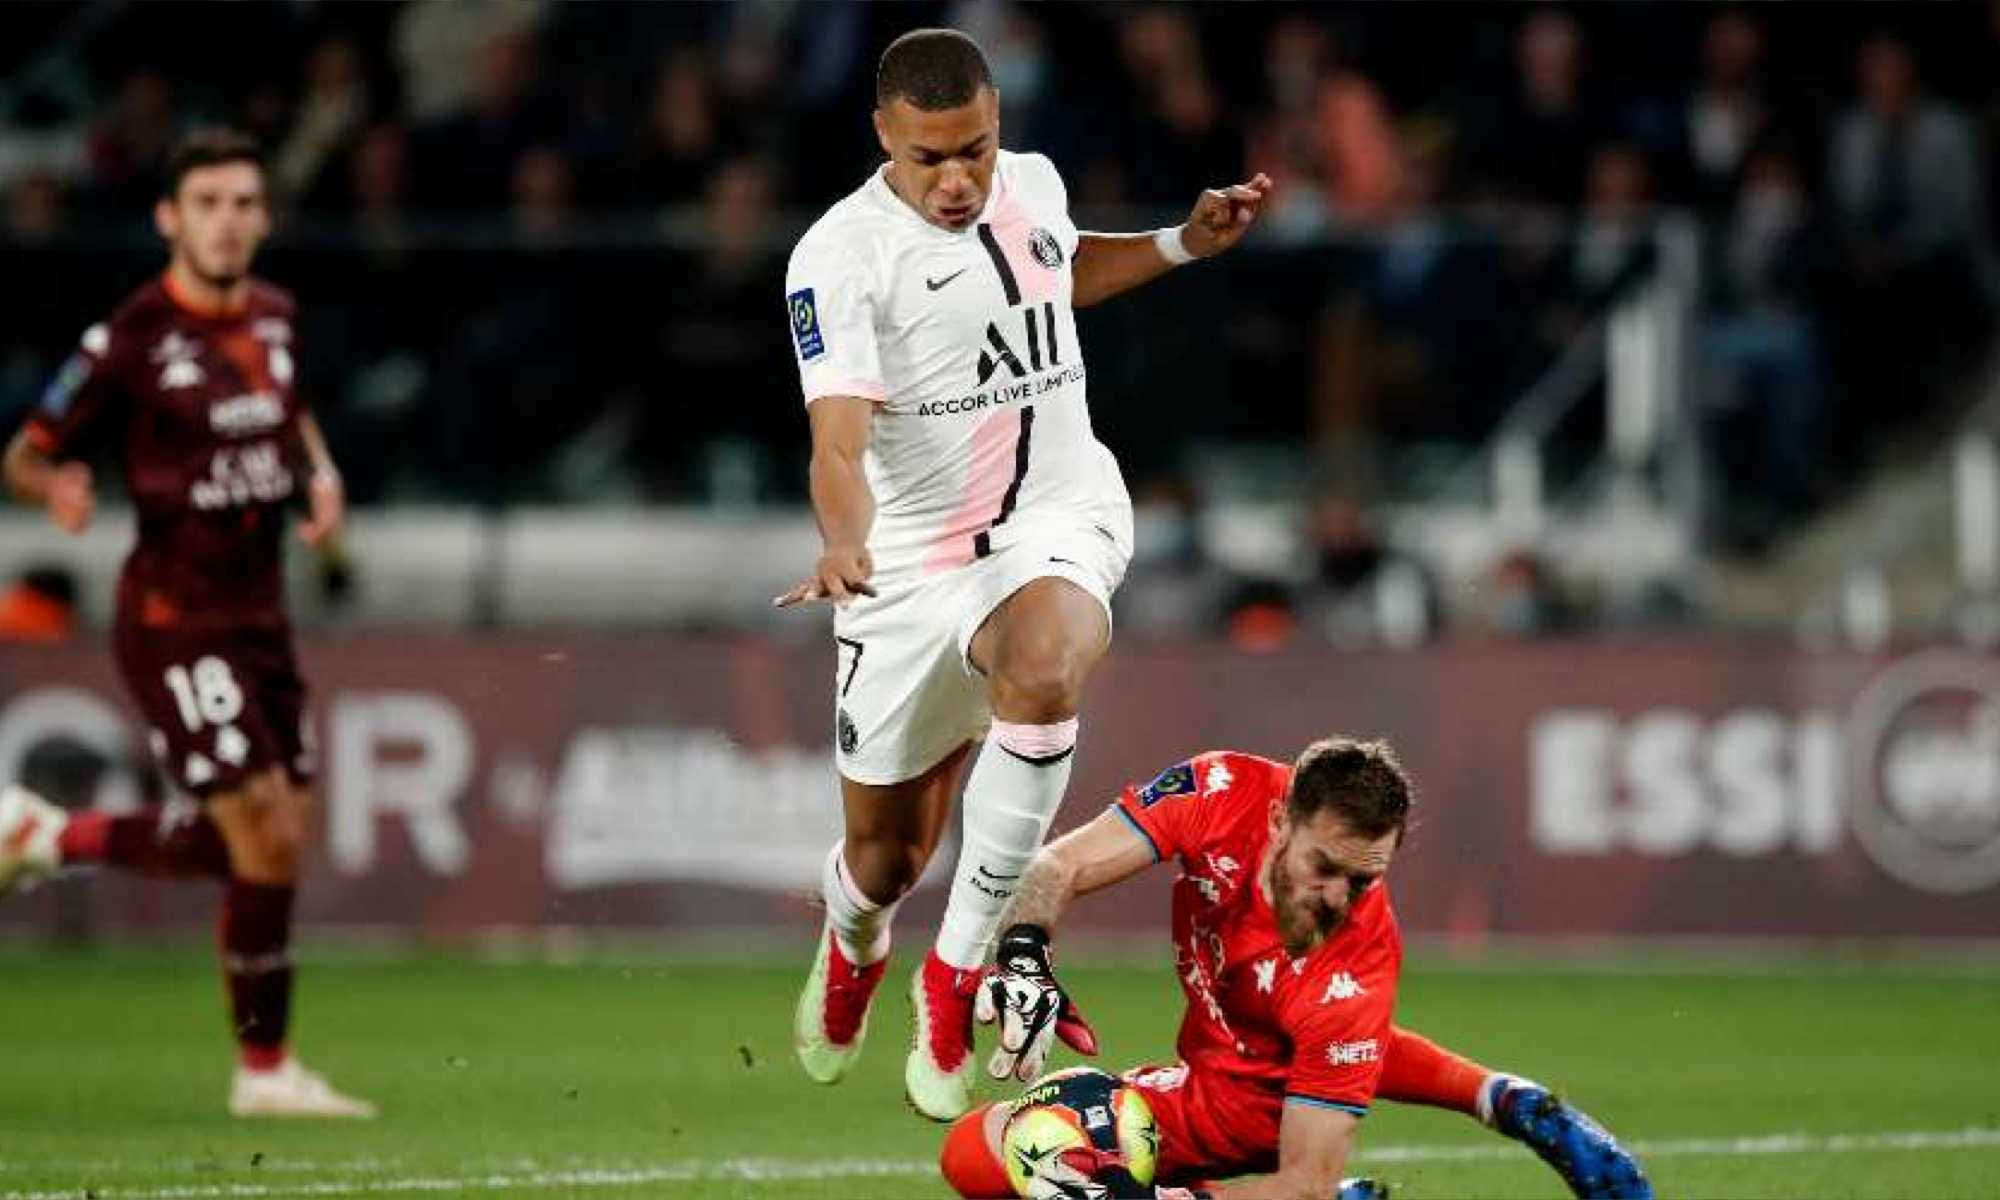 oukidja mbappe colere contact